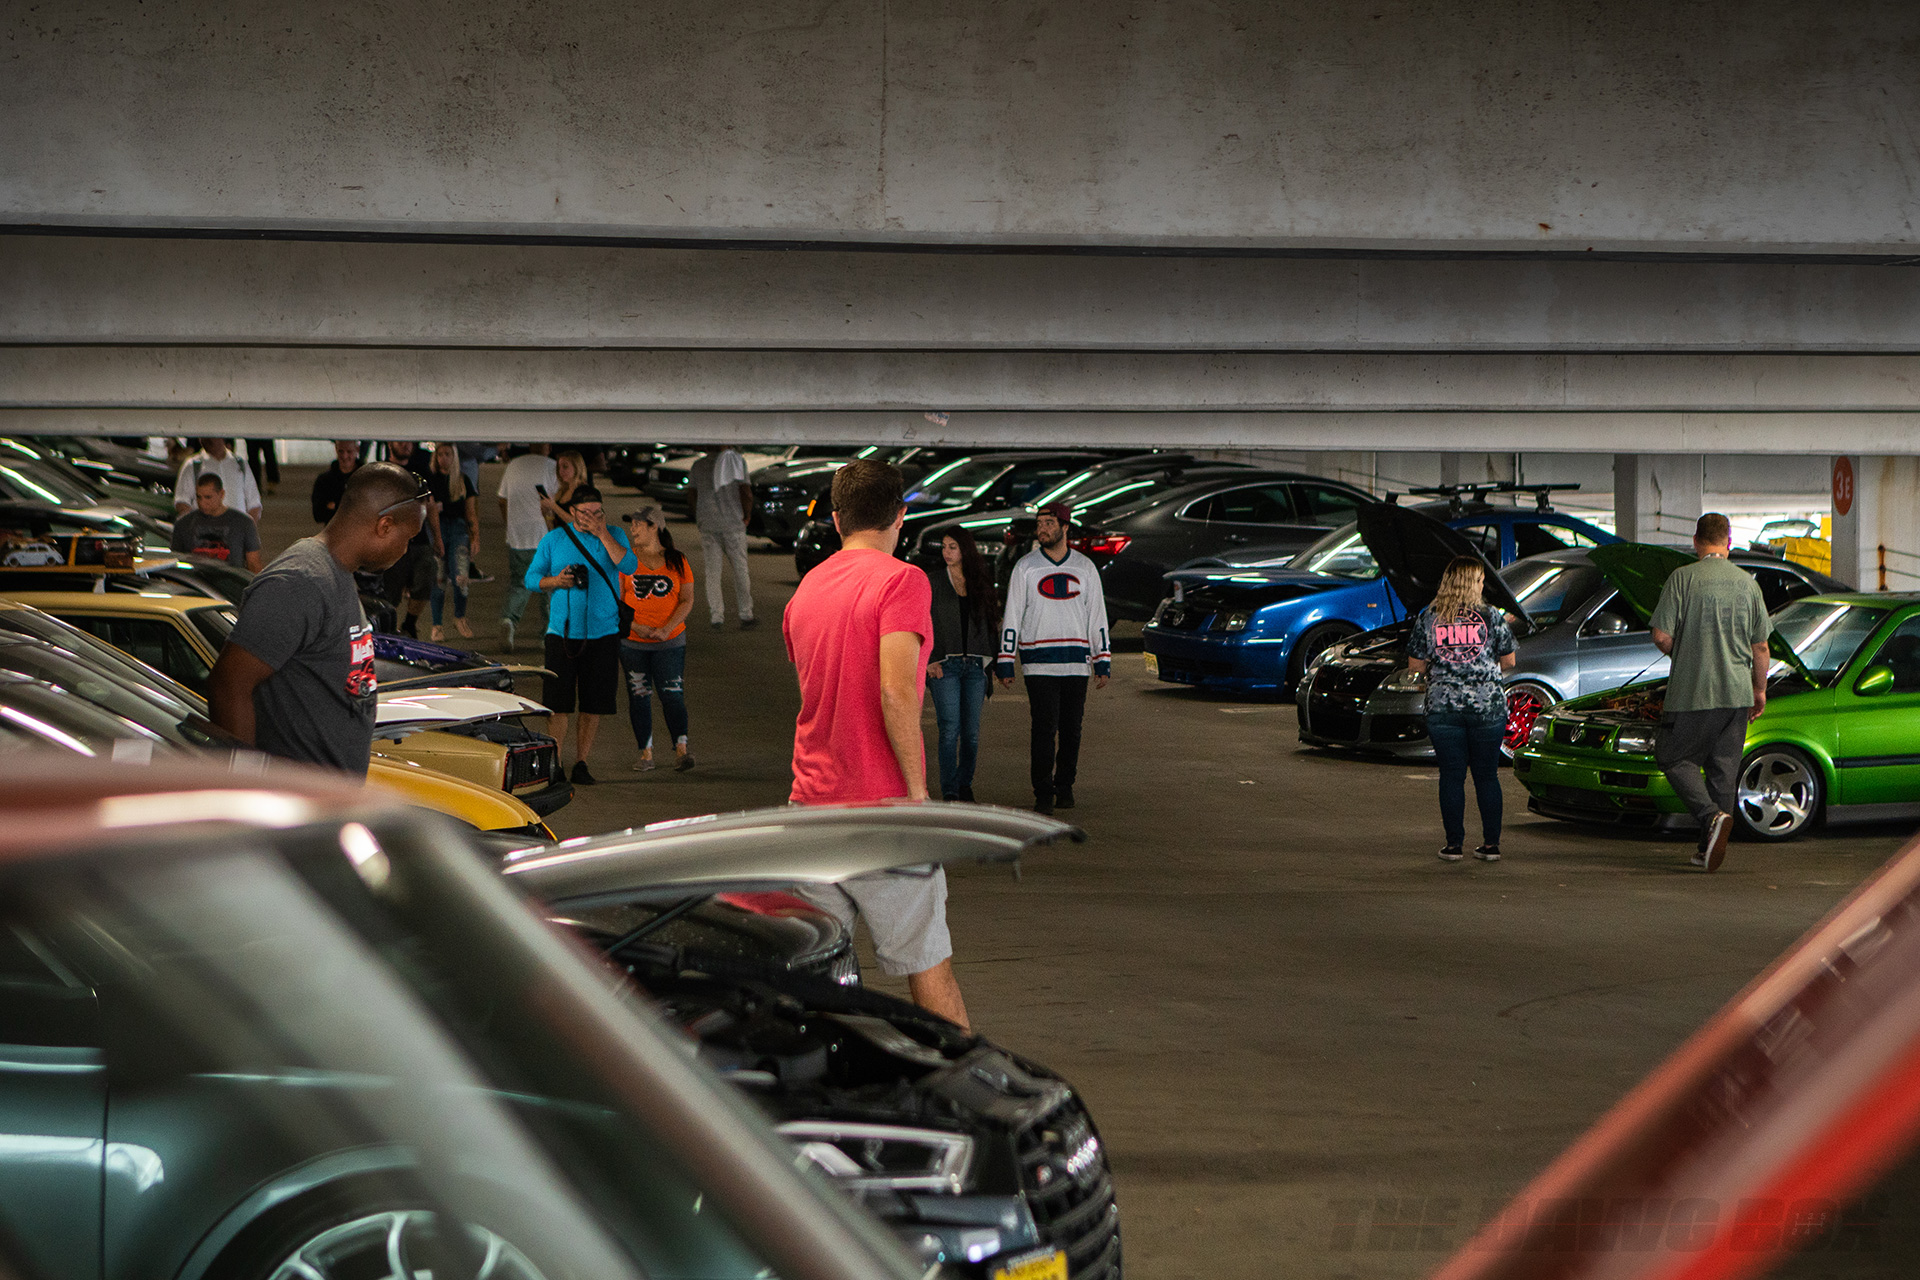 Cars lined up and displaying their engines in a parking garage